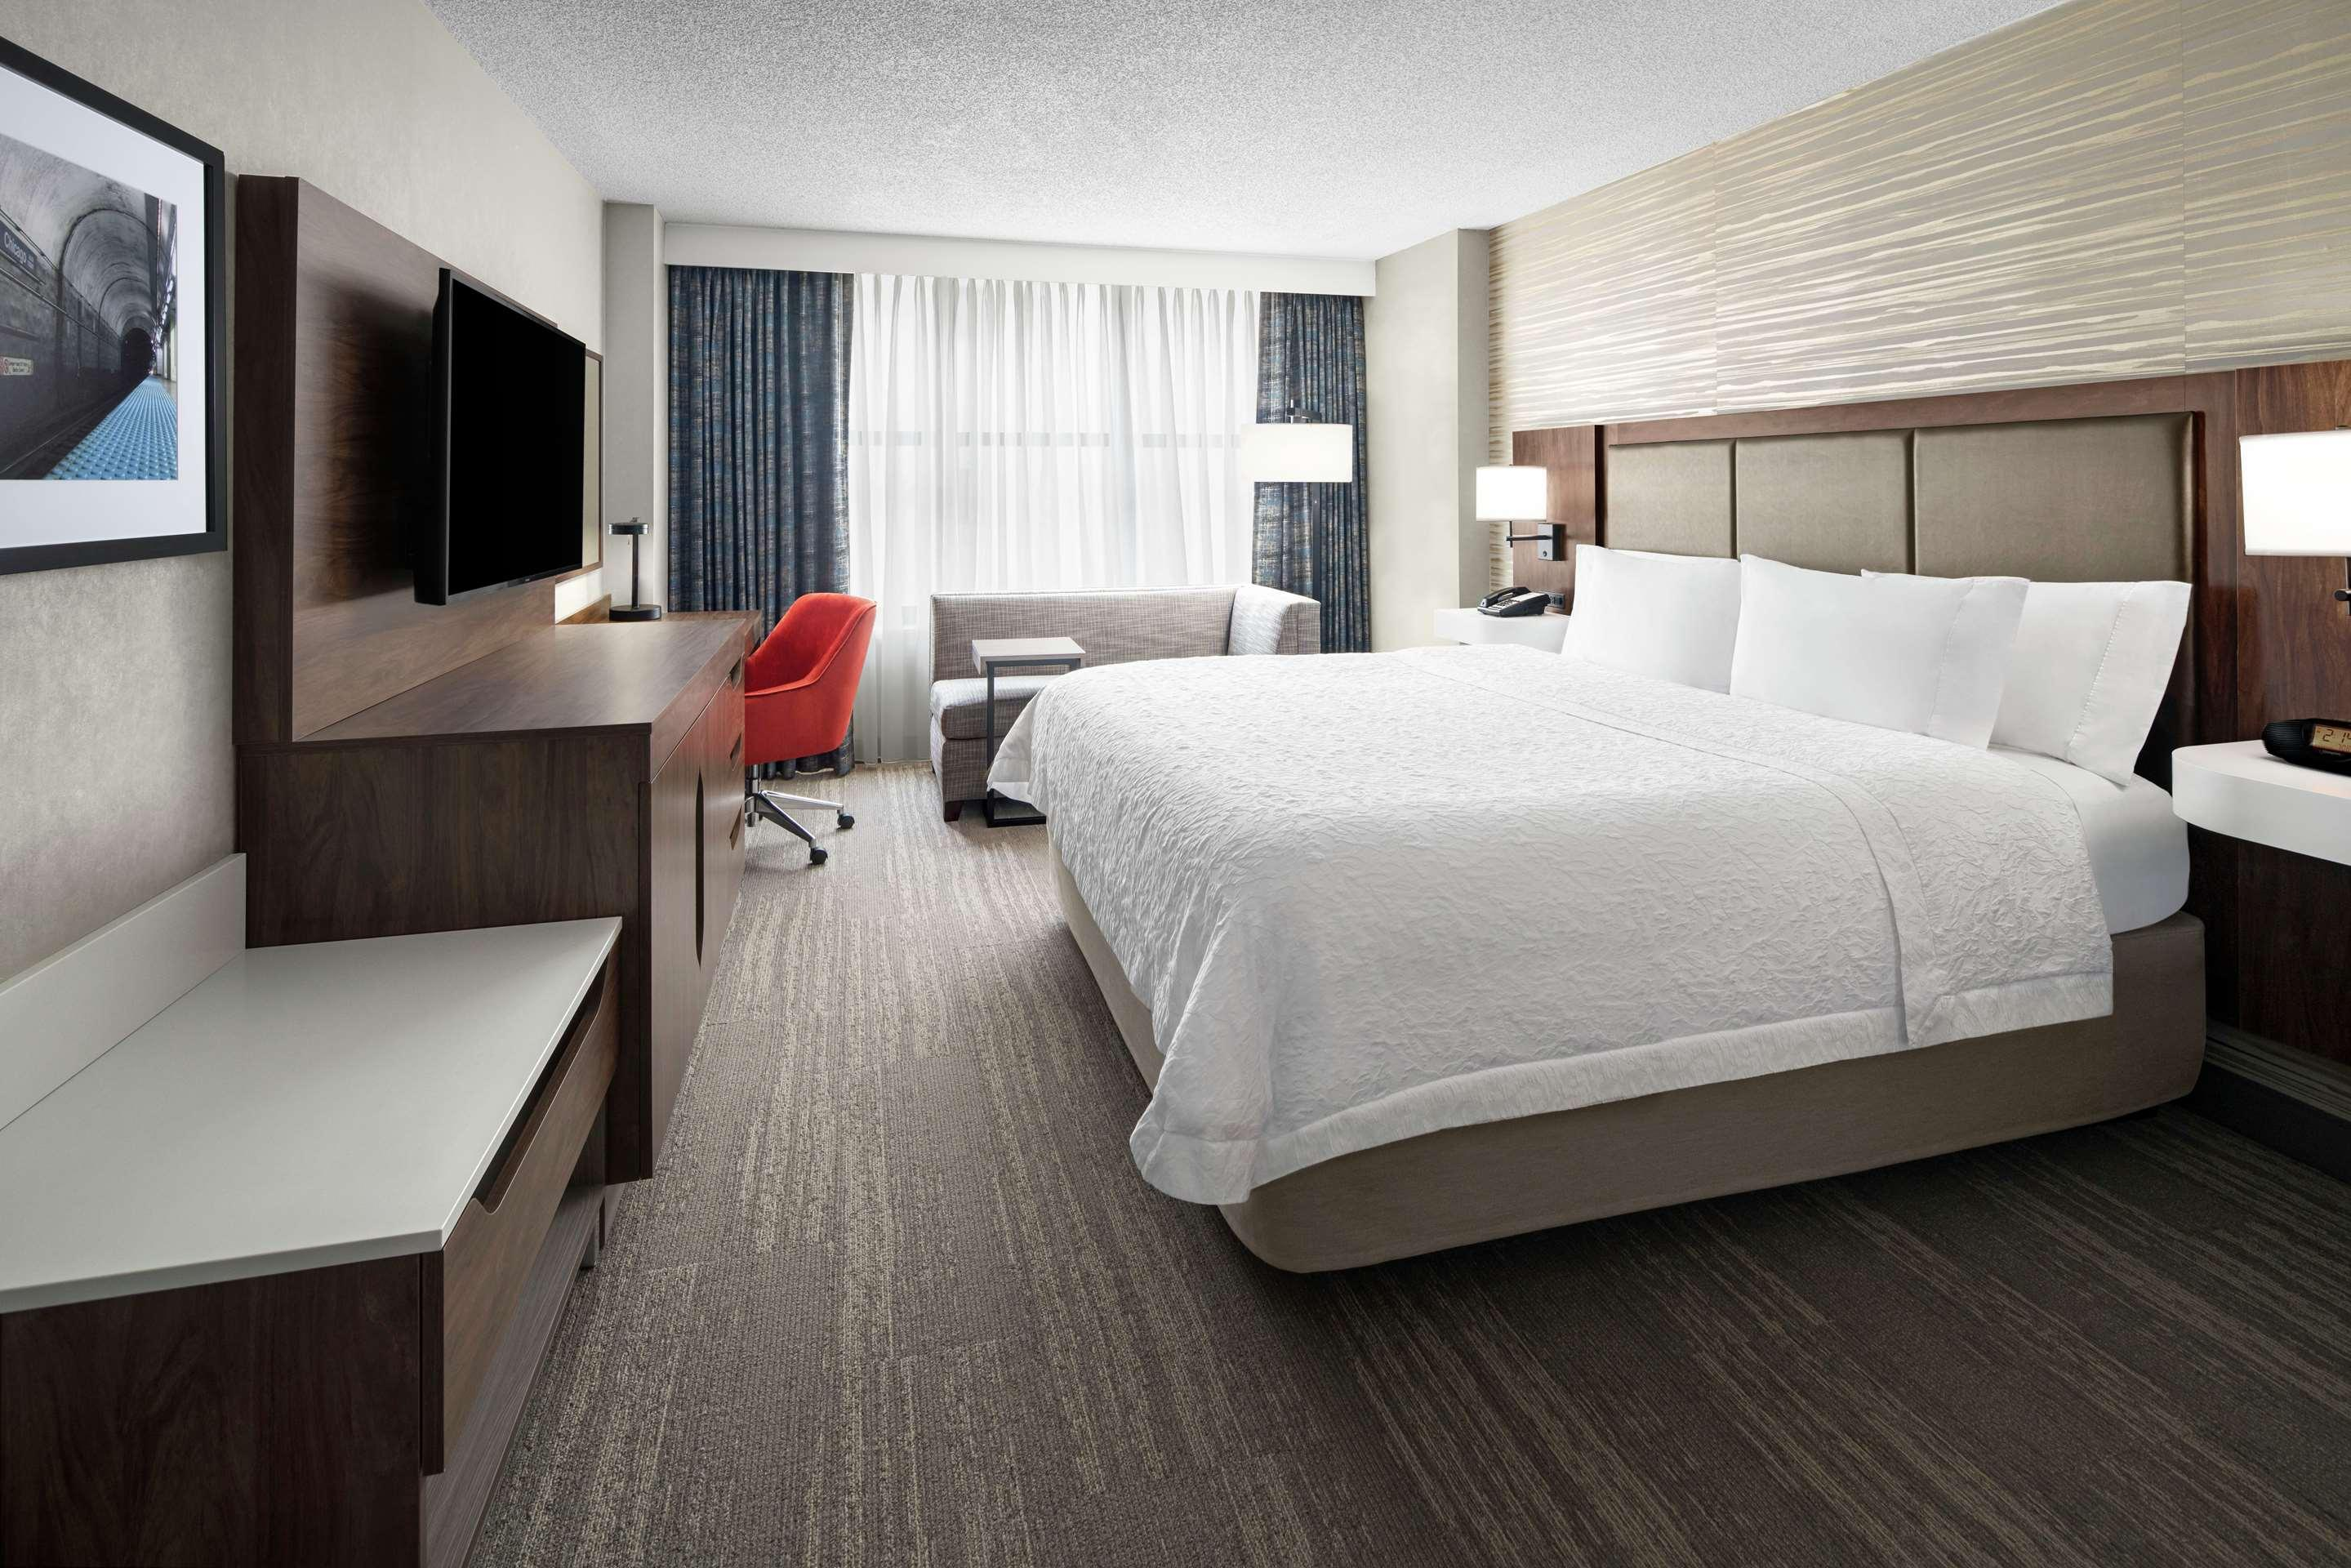 Chicago Hotels 1 751 Cheap Chicago Hotel Deals United States